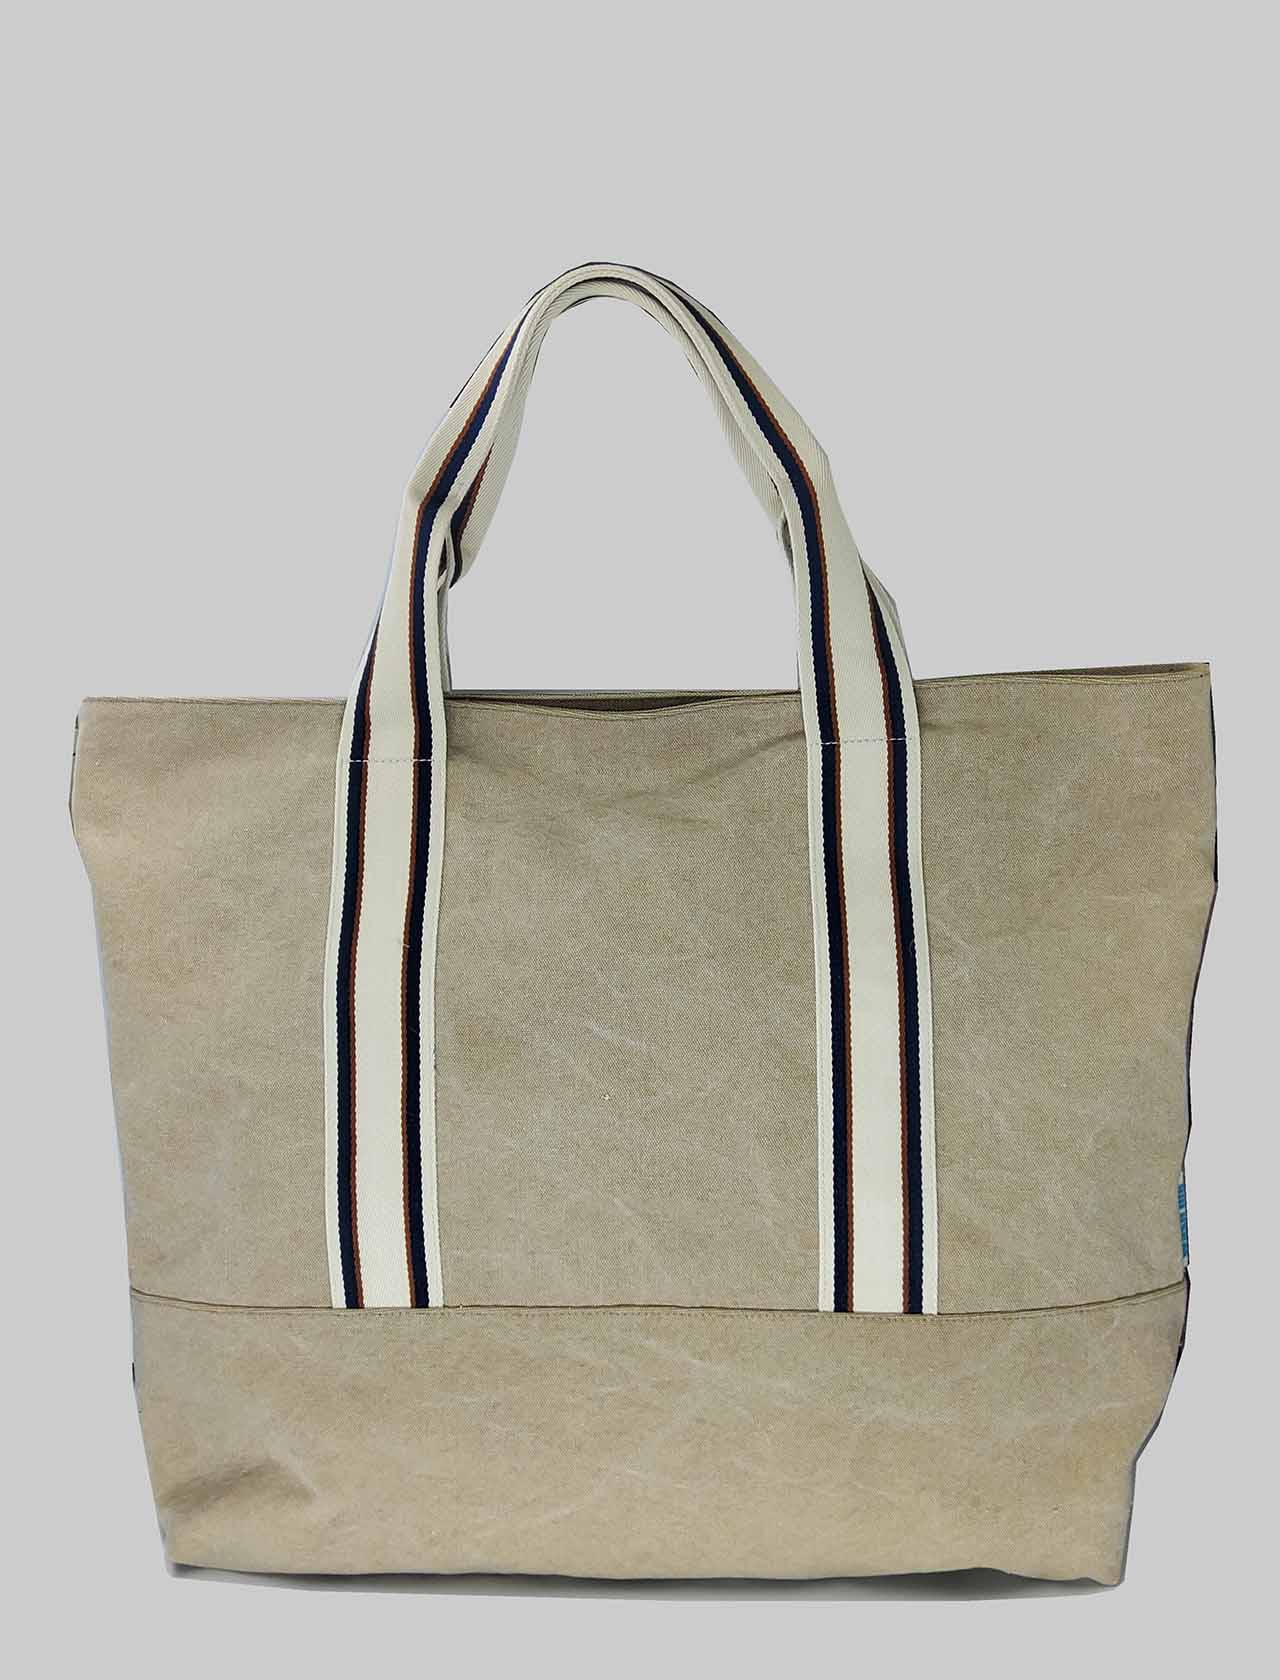 Shoulder Bag Woman Bag in Natural Fabric with Bicolor Handles Unisa | Bags and backpacks | ZSYBIL200